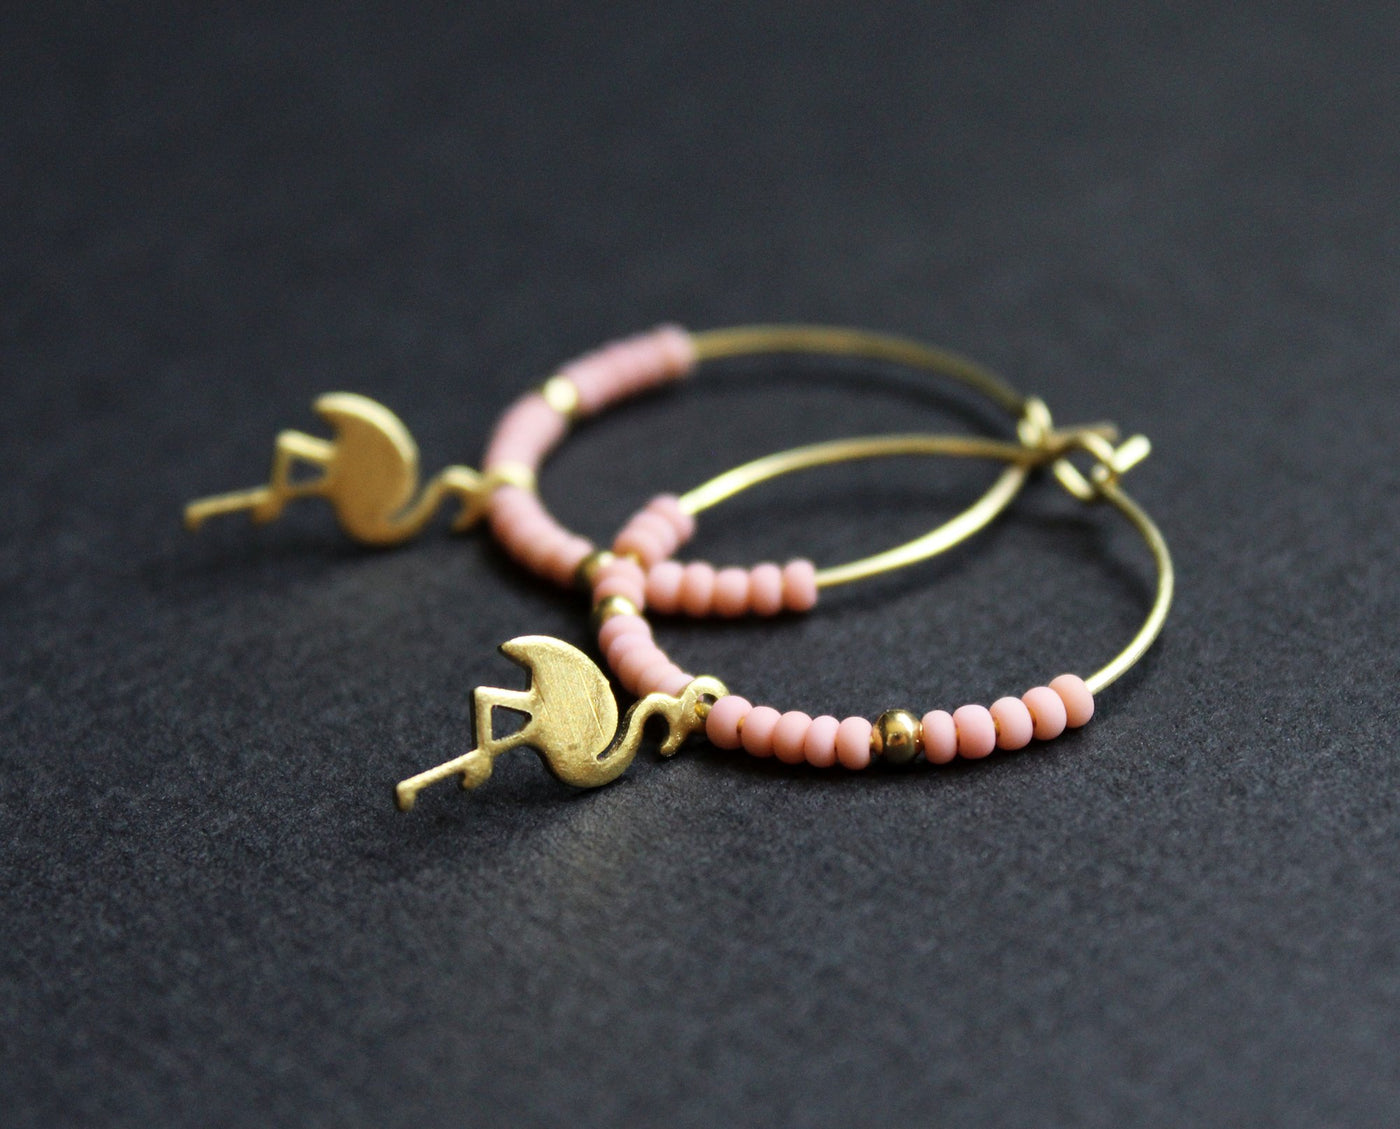 Flamingo Boucles d'oreilles- NEA Wear